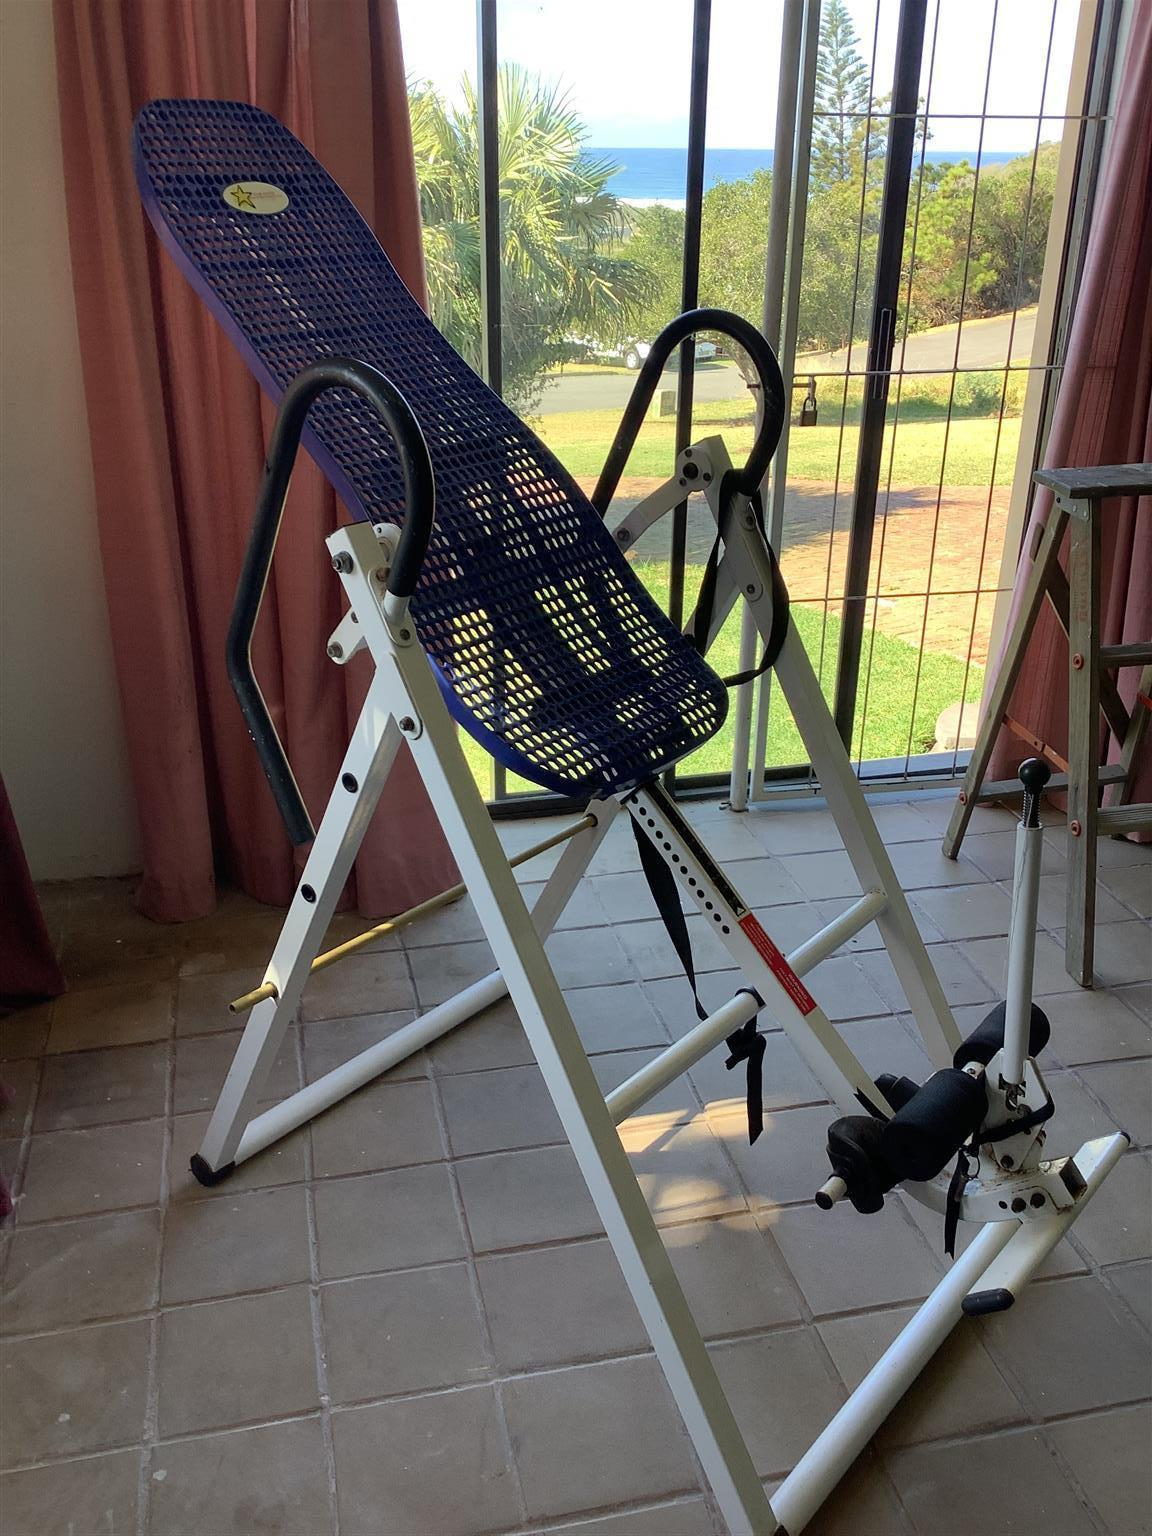 Inversion table for sale in good condition. For treatment of backache etc